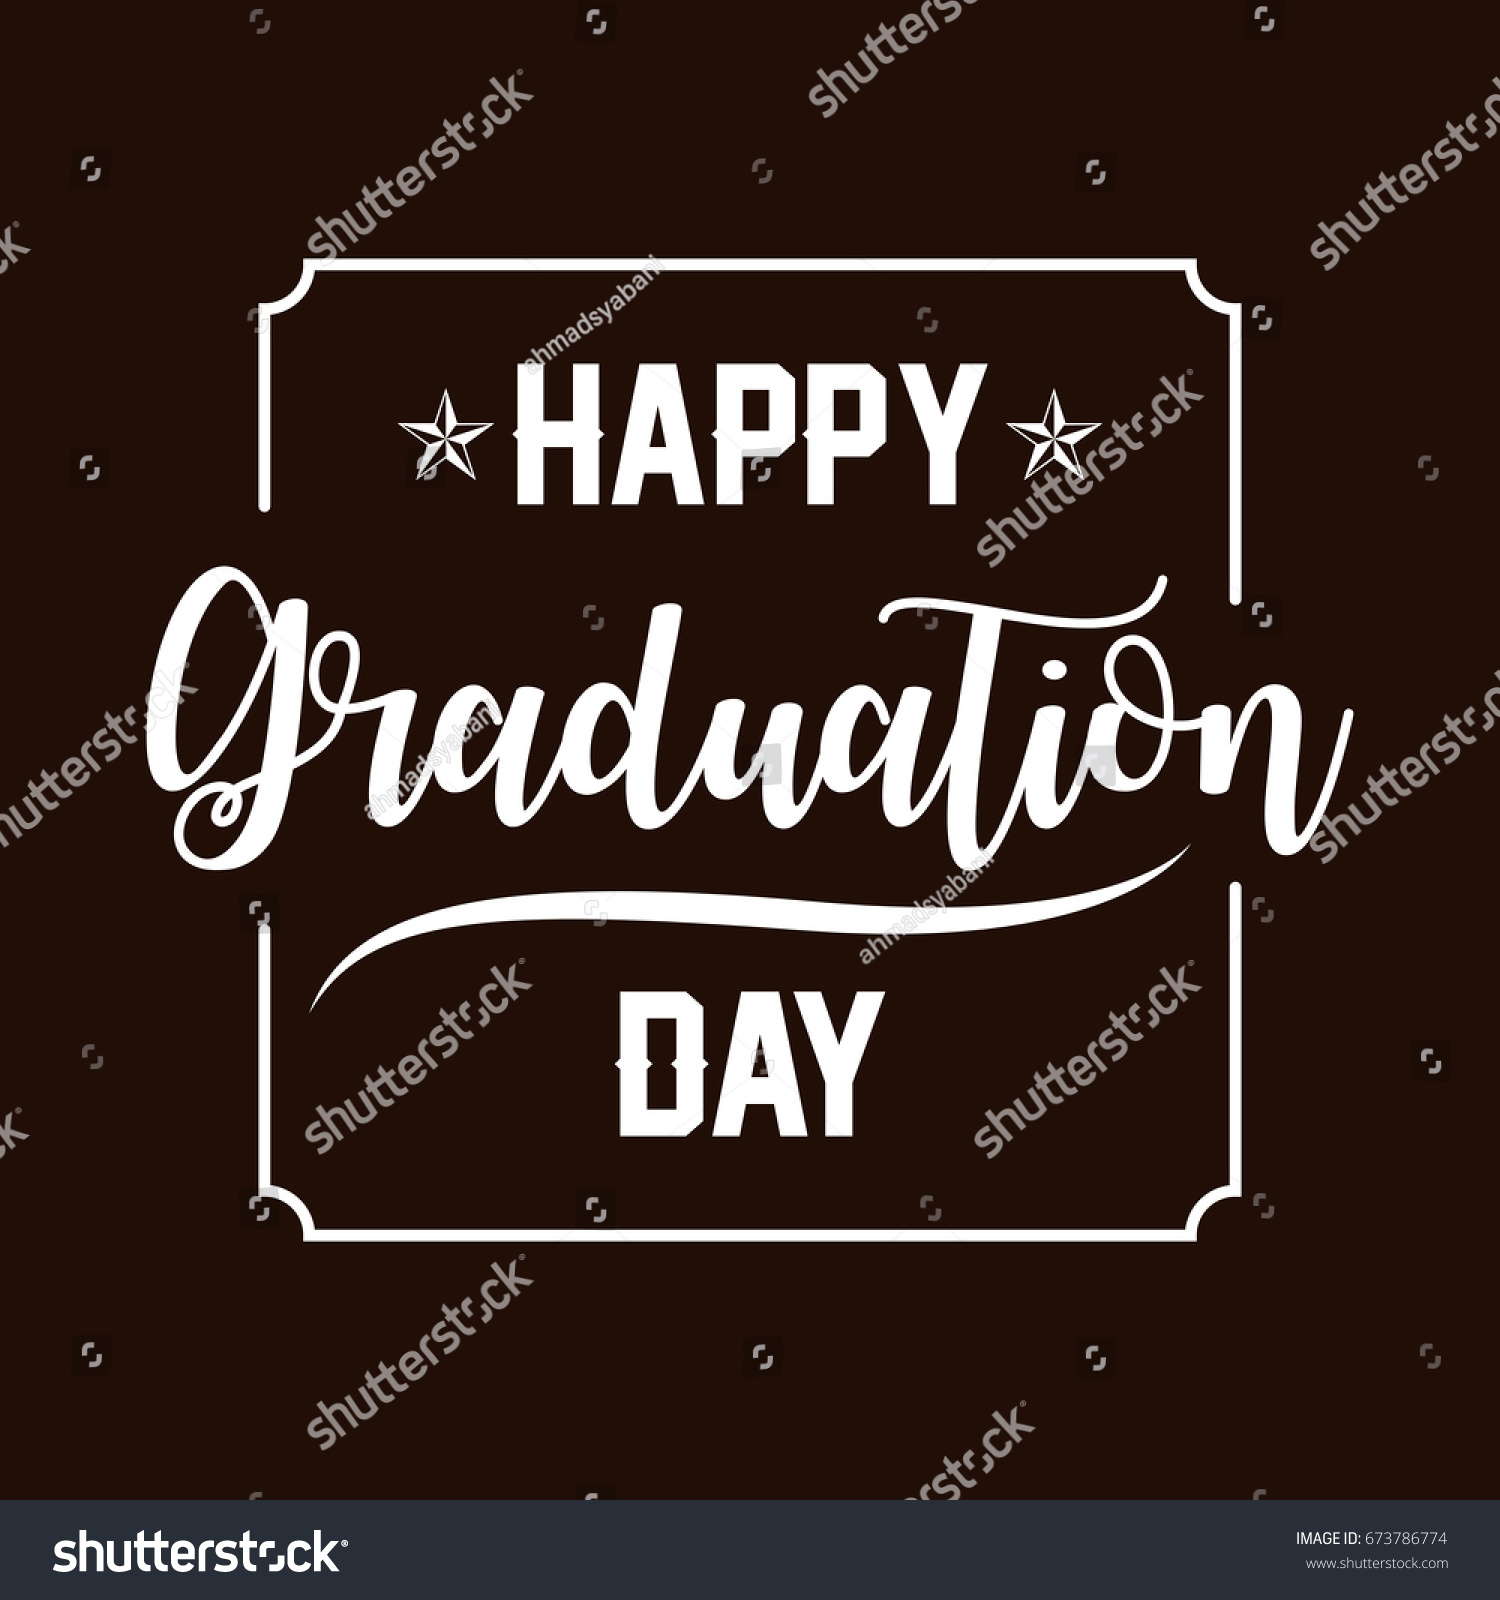 Graduation day greetings image collections greetings card design happy graduation day hand drawn lettering stock vector hd royalty m4hsunfo